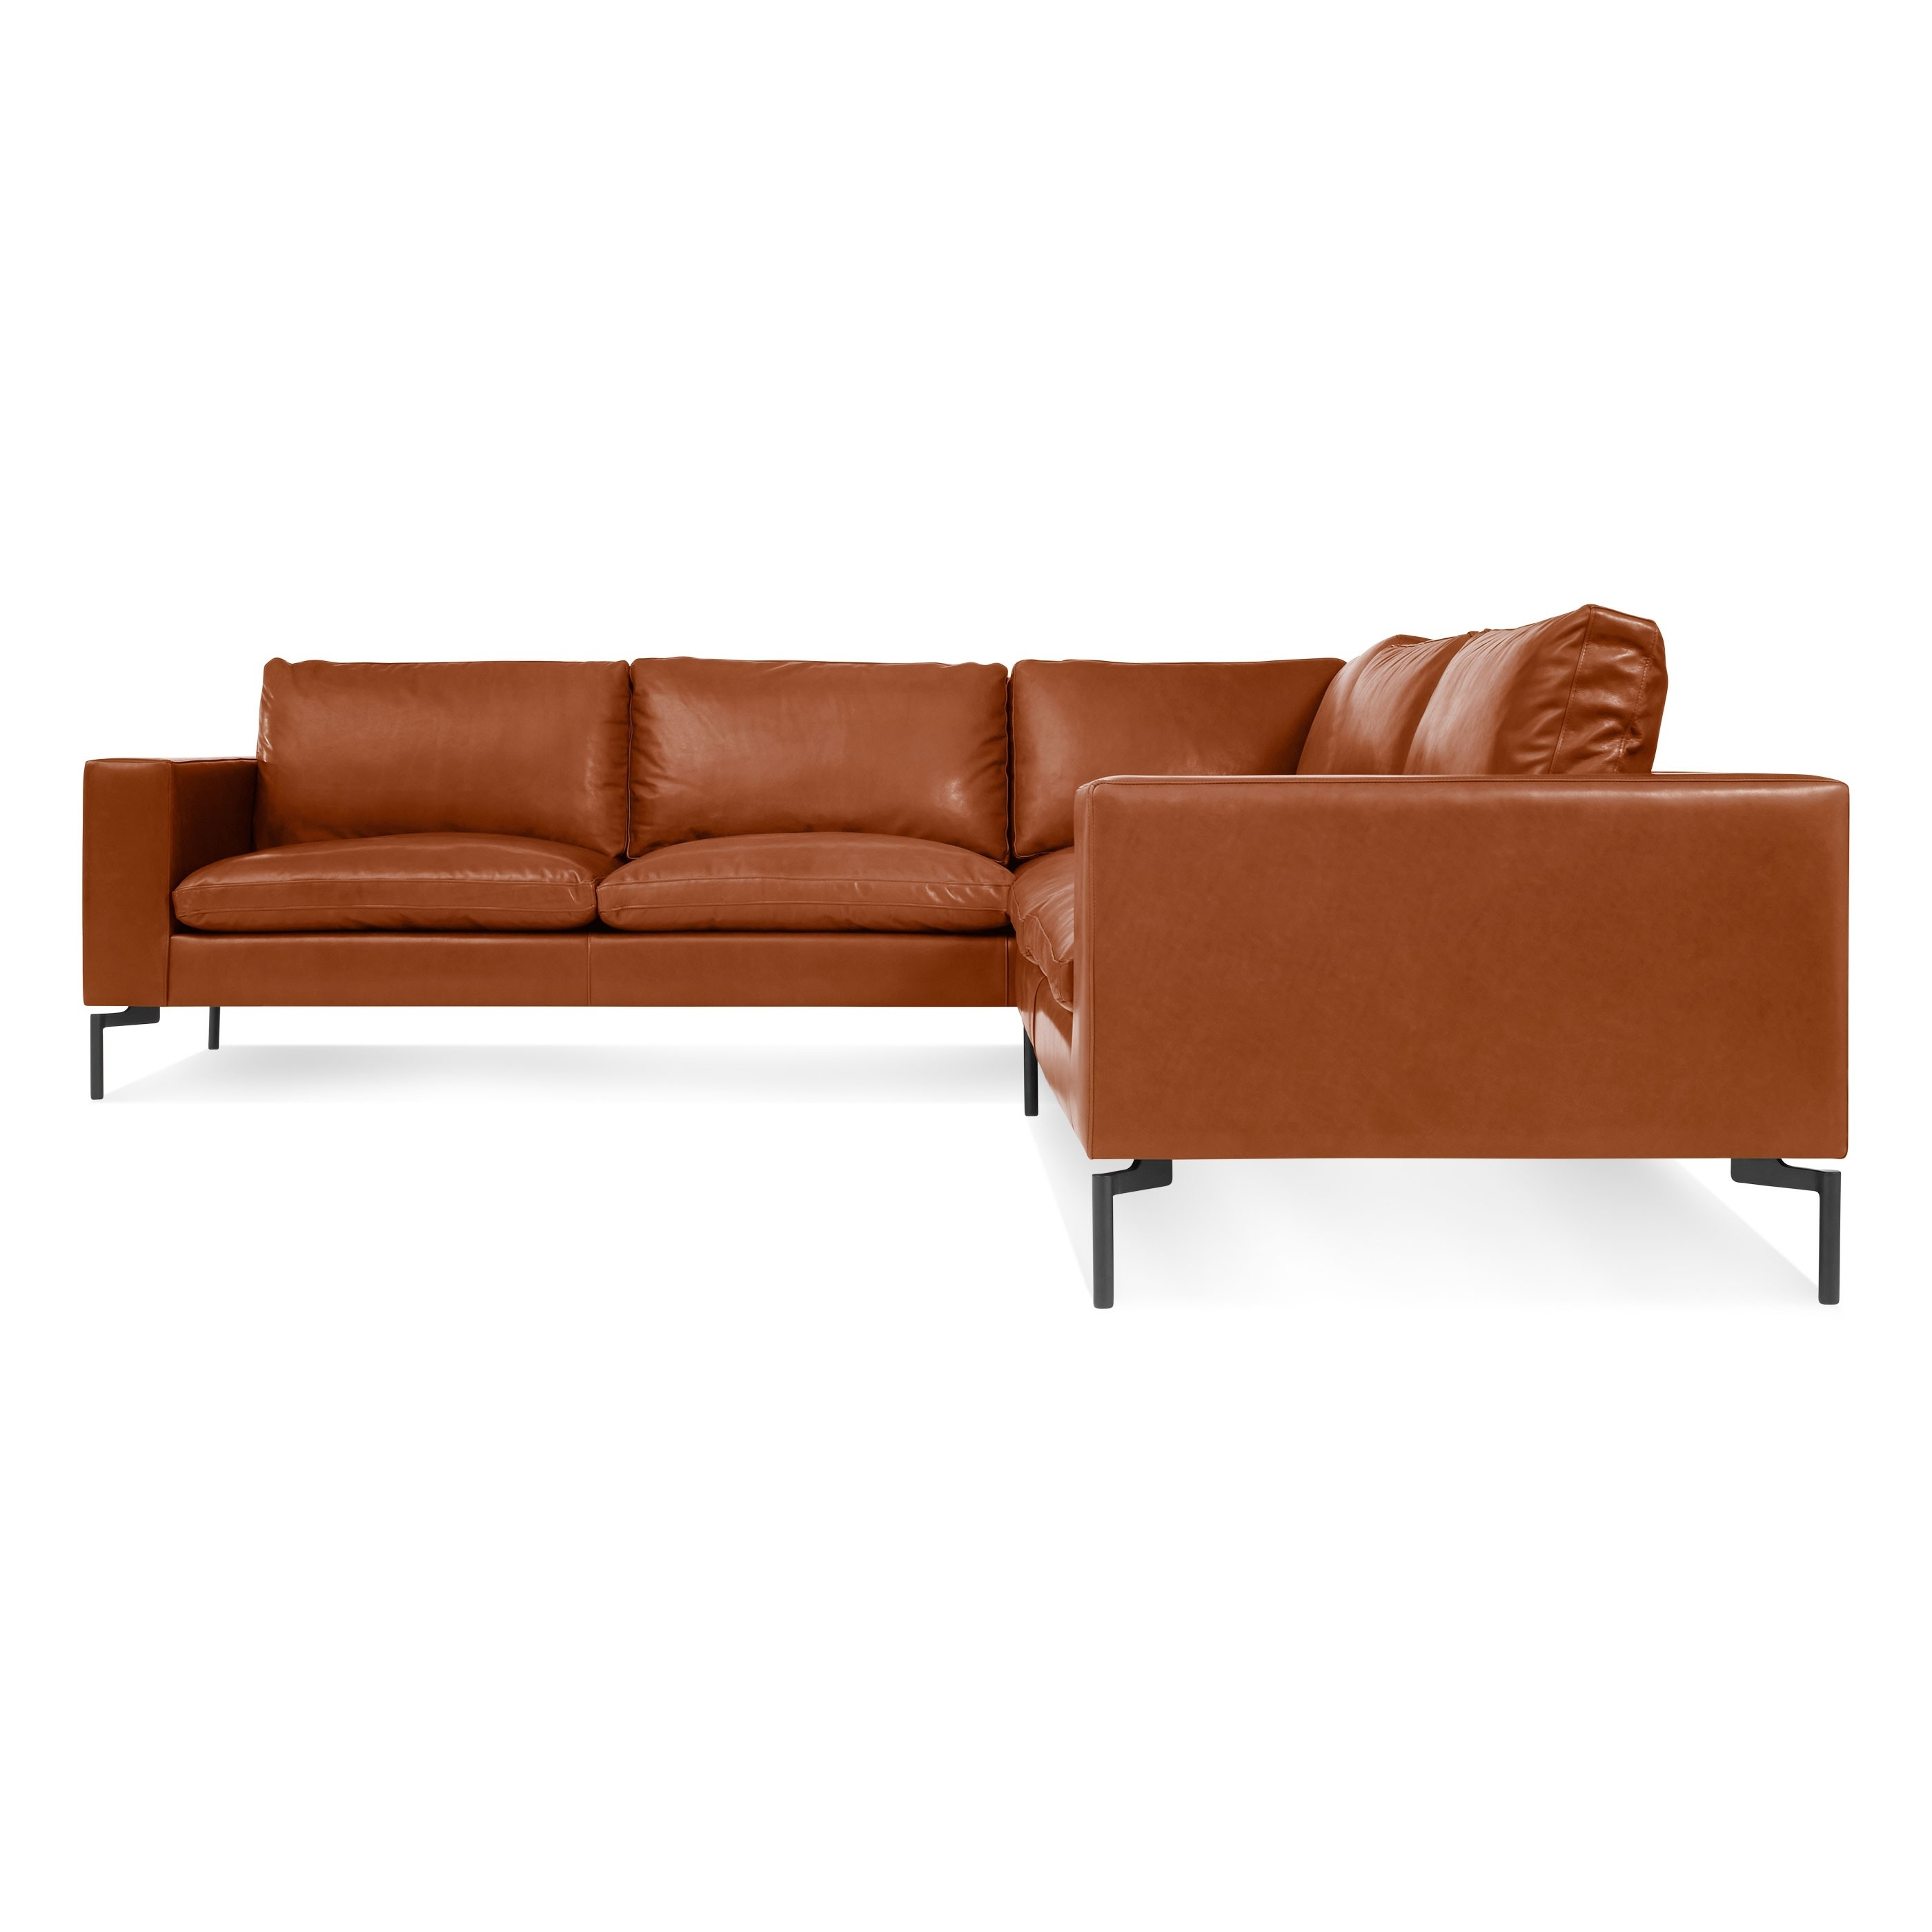 Popular Sectional Sofas At Bc Canada Regarding New Standard Small Leather Sectional – Modern Leather Sofa (View 14 of 15)